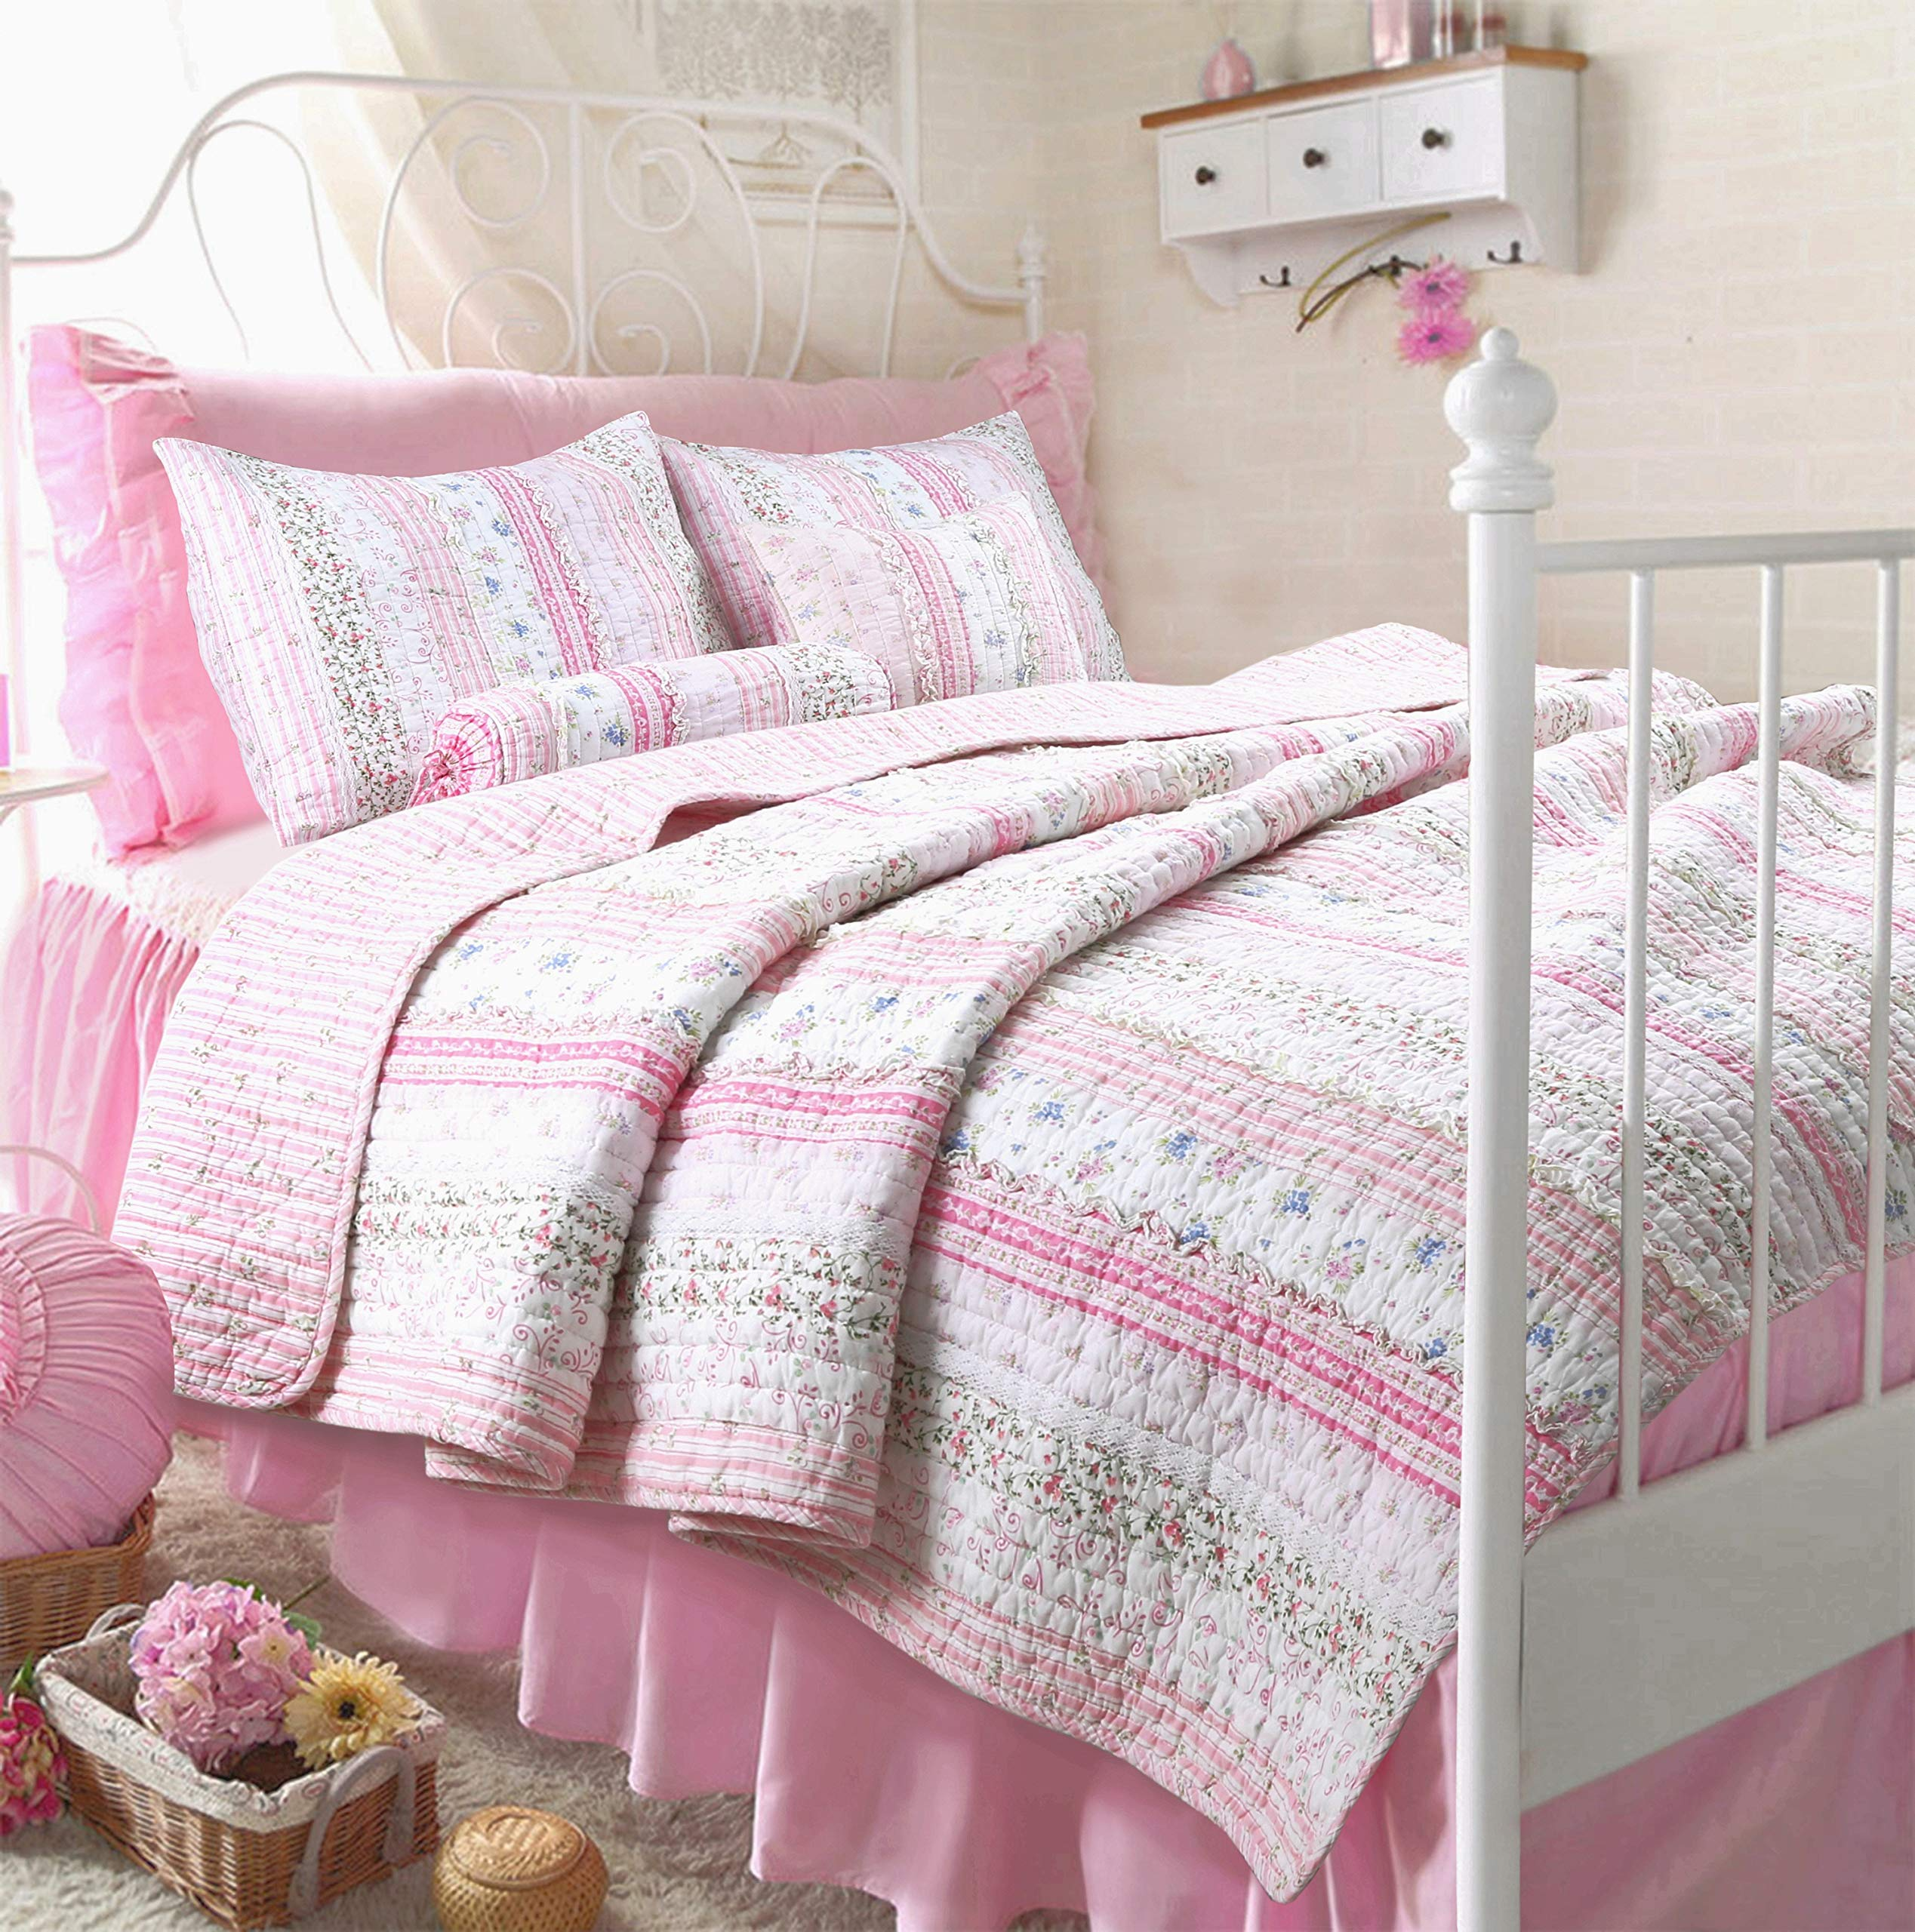 Cozy Line Home Fashions Pink Rose Blue Flower Floral Printed Lace Stripe 100% Cotton Bedding Quilt Set Reversible Coverlet Bedspread (Pink Lace, Twin - 2 Piece) by Cozy Line Home Fashions